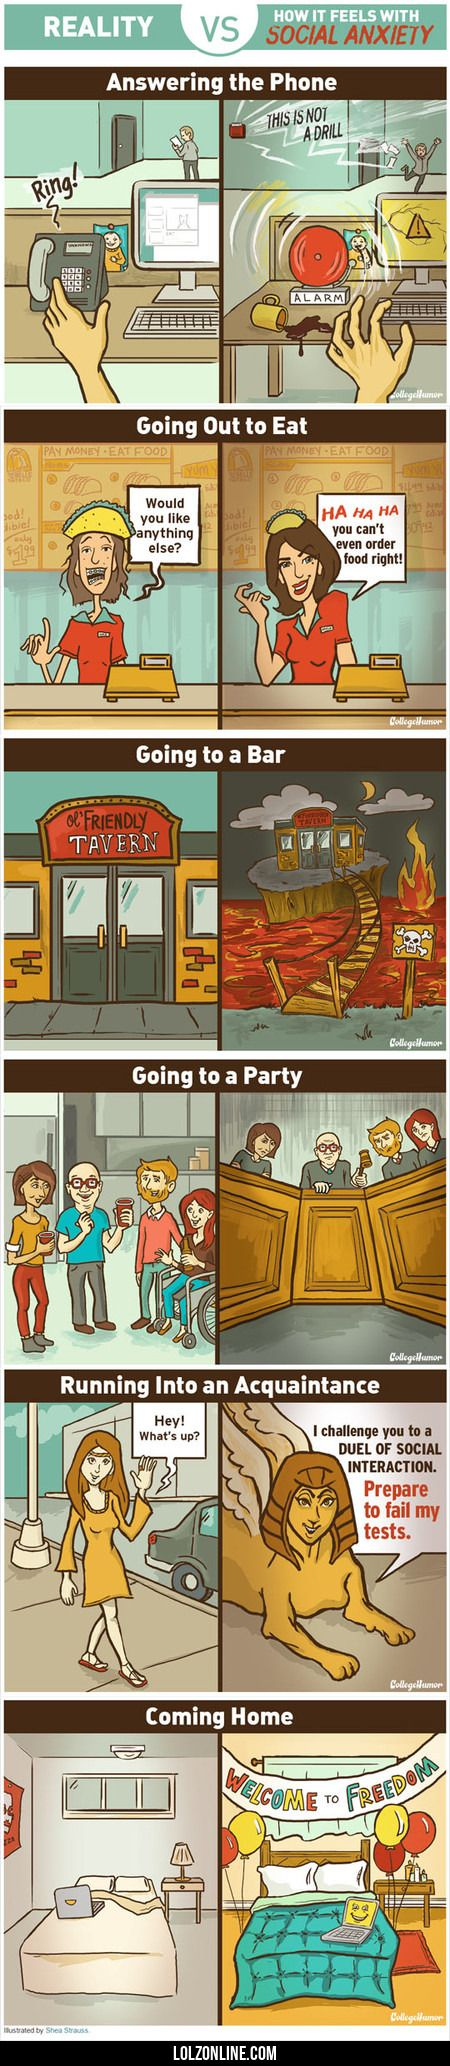 How It Feels With Social Anxiety #lol #haha #funny